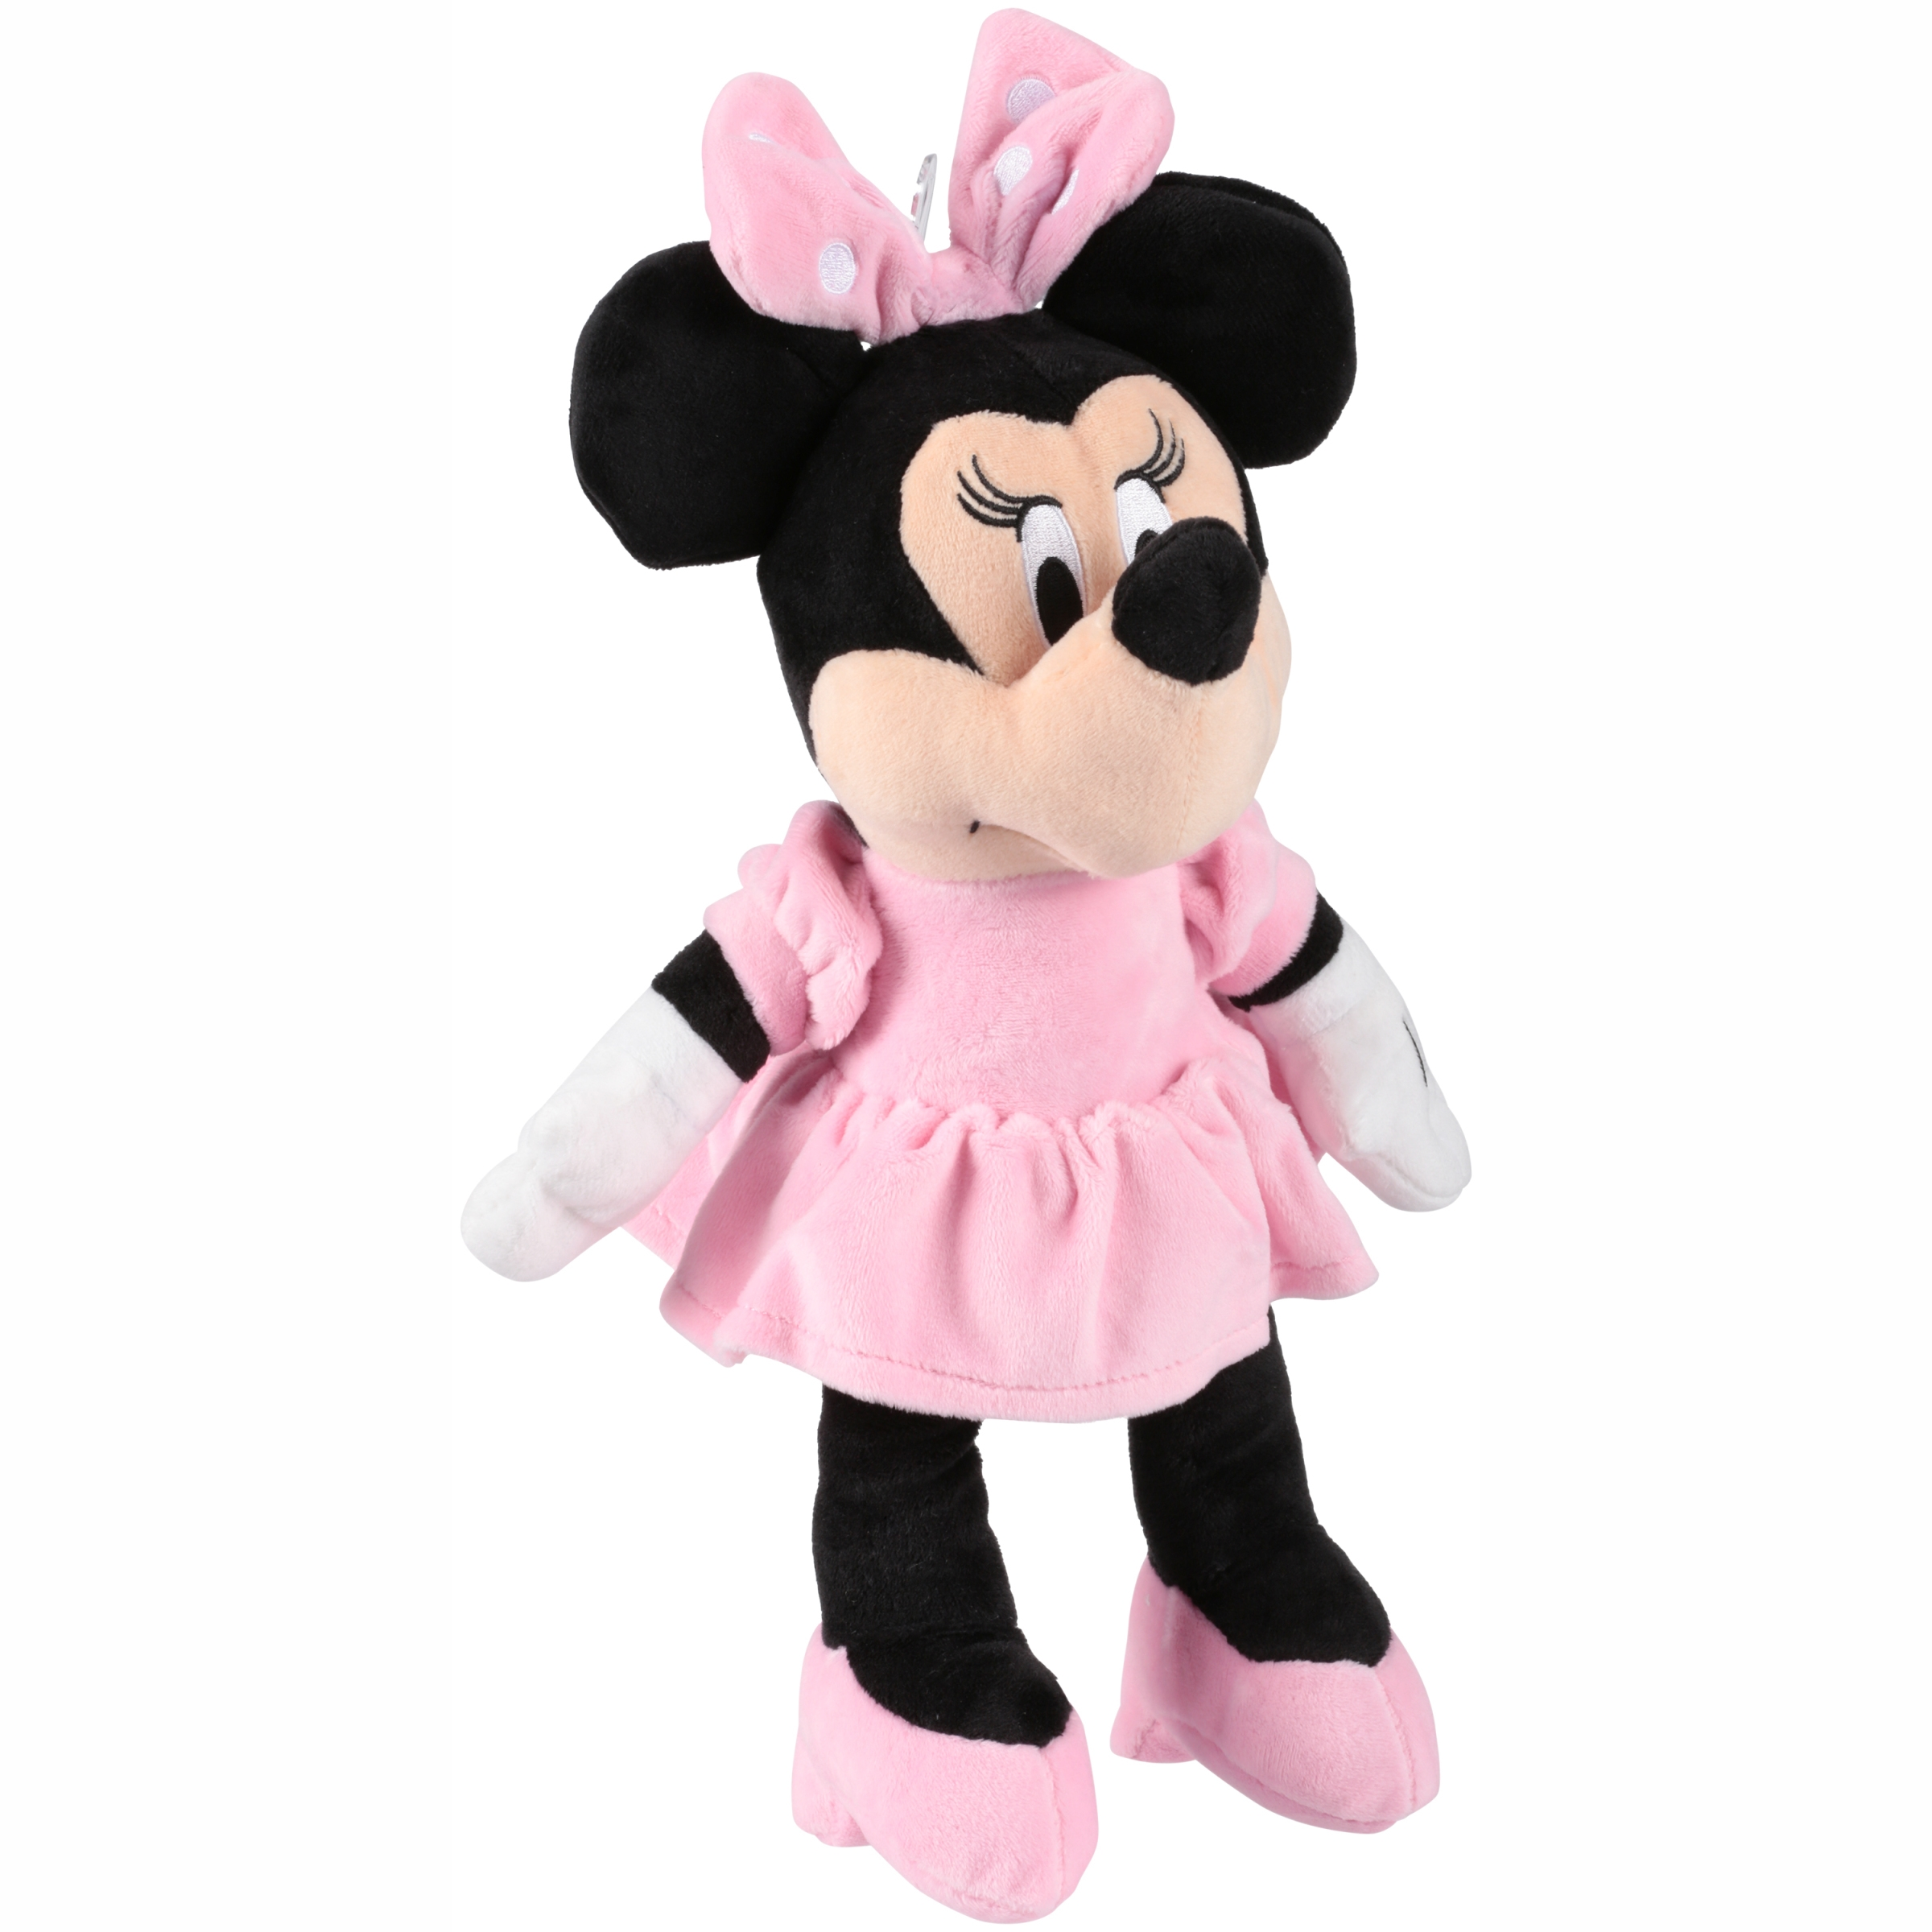 Disney Baby Minnie Mouse Stuffed Toy